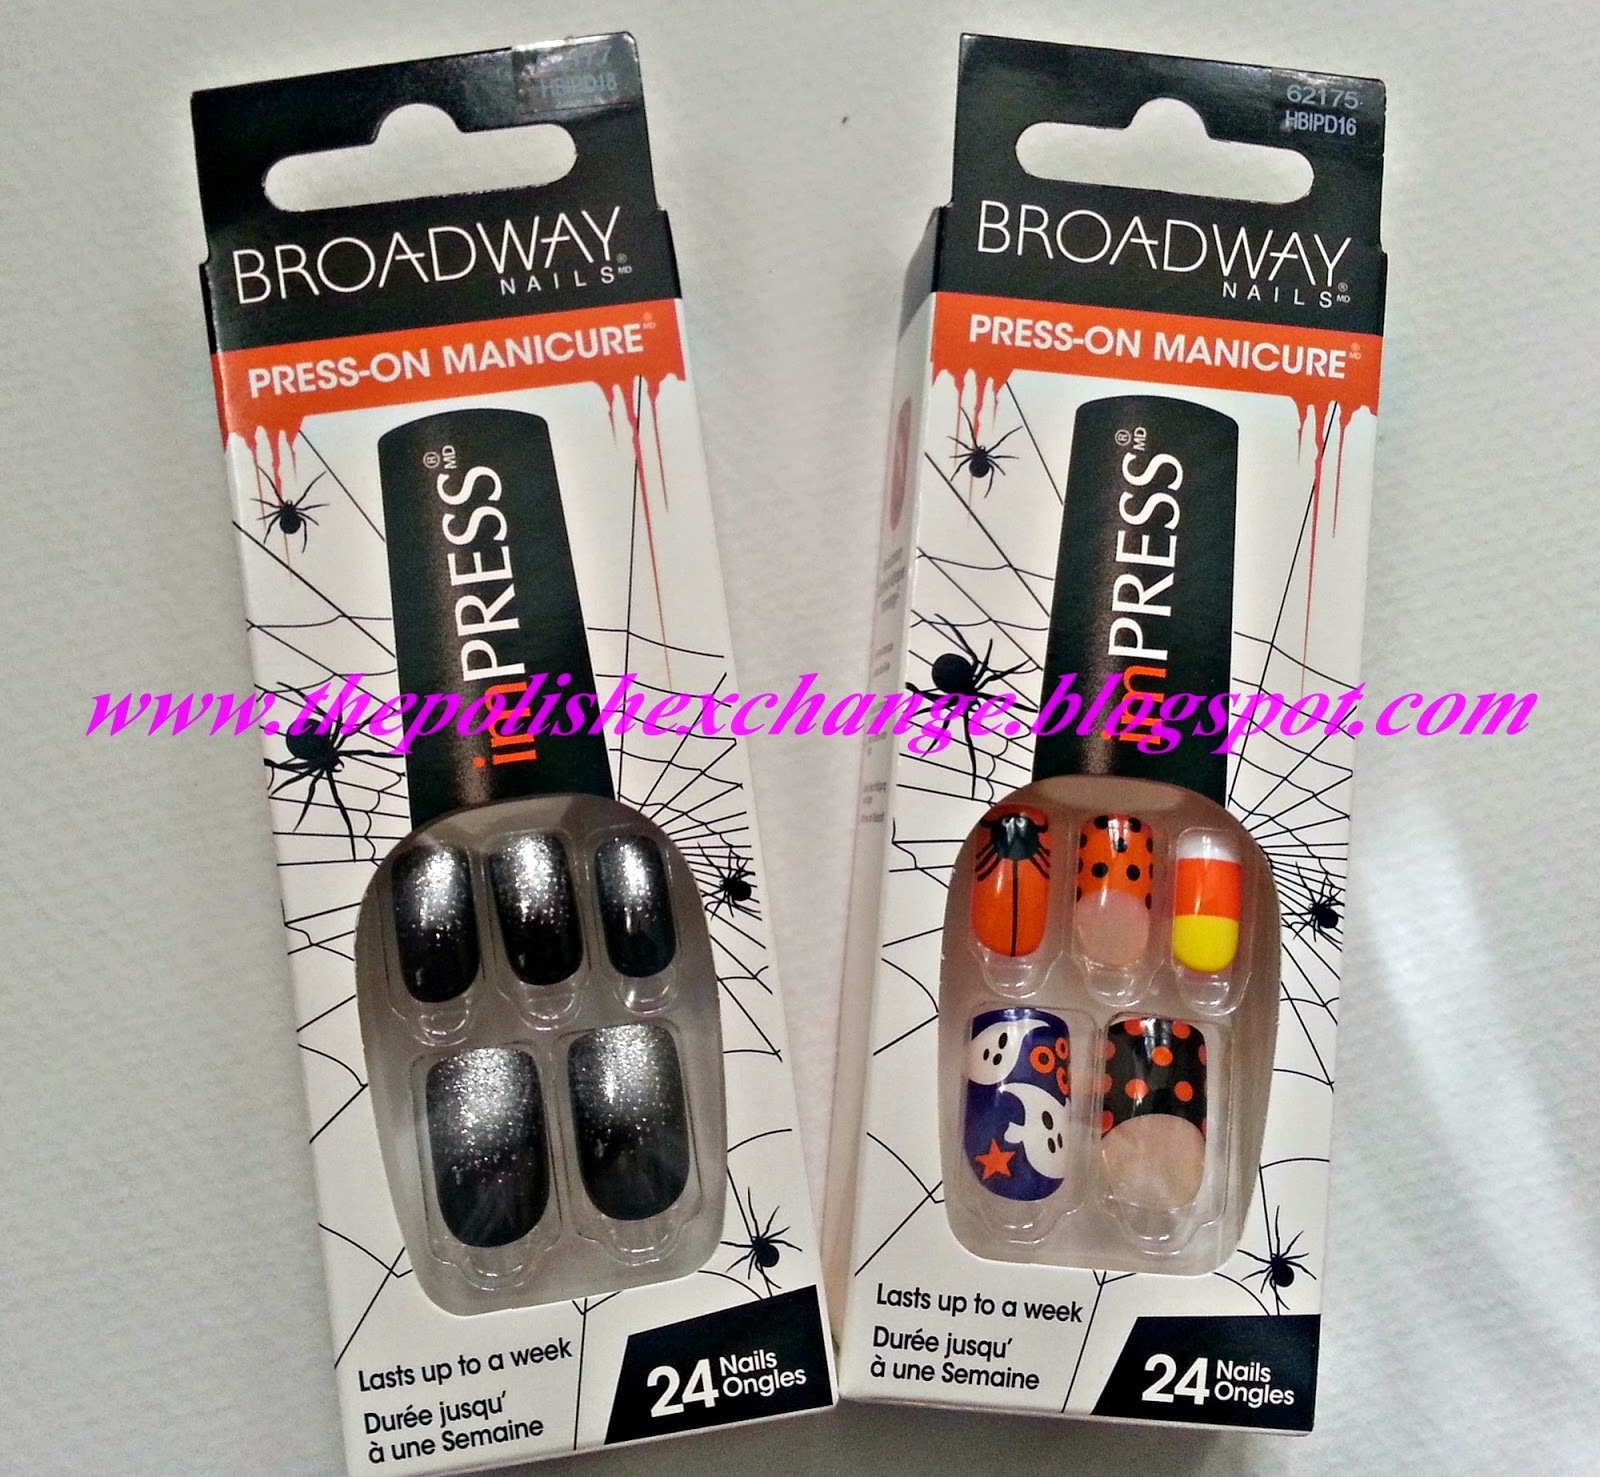 Nails Get Spooky This Halloween w/ Kiss Nails & Broadway ...